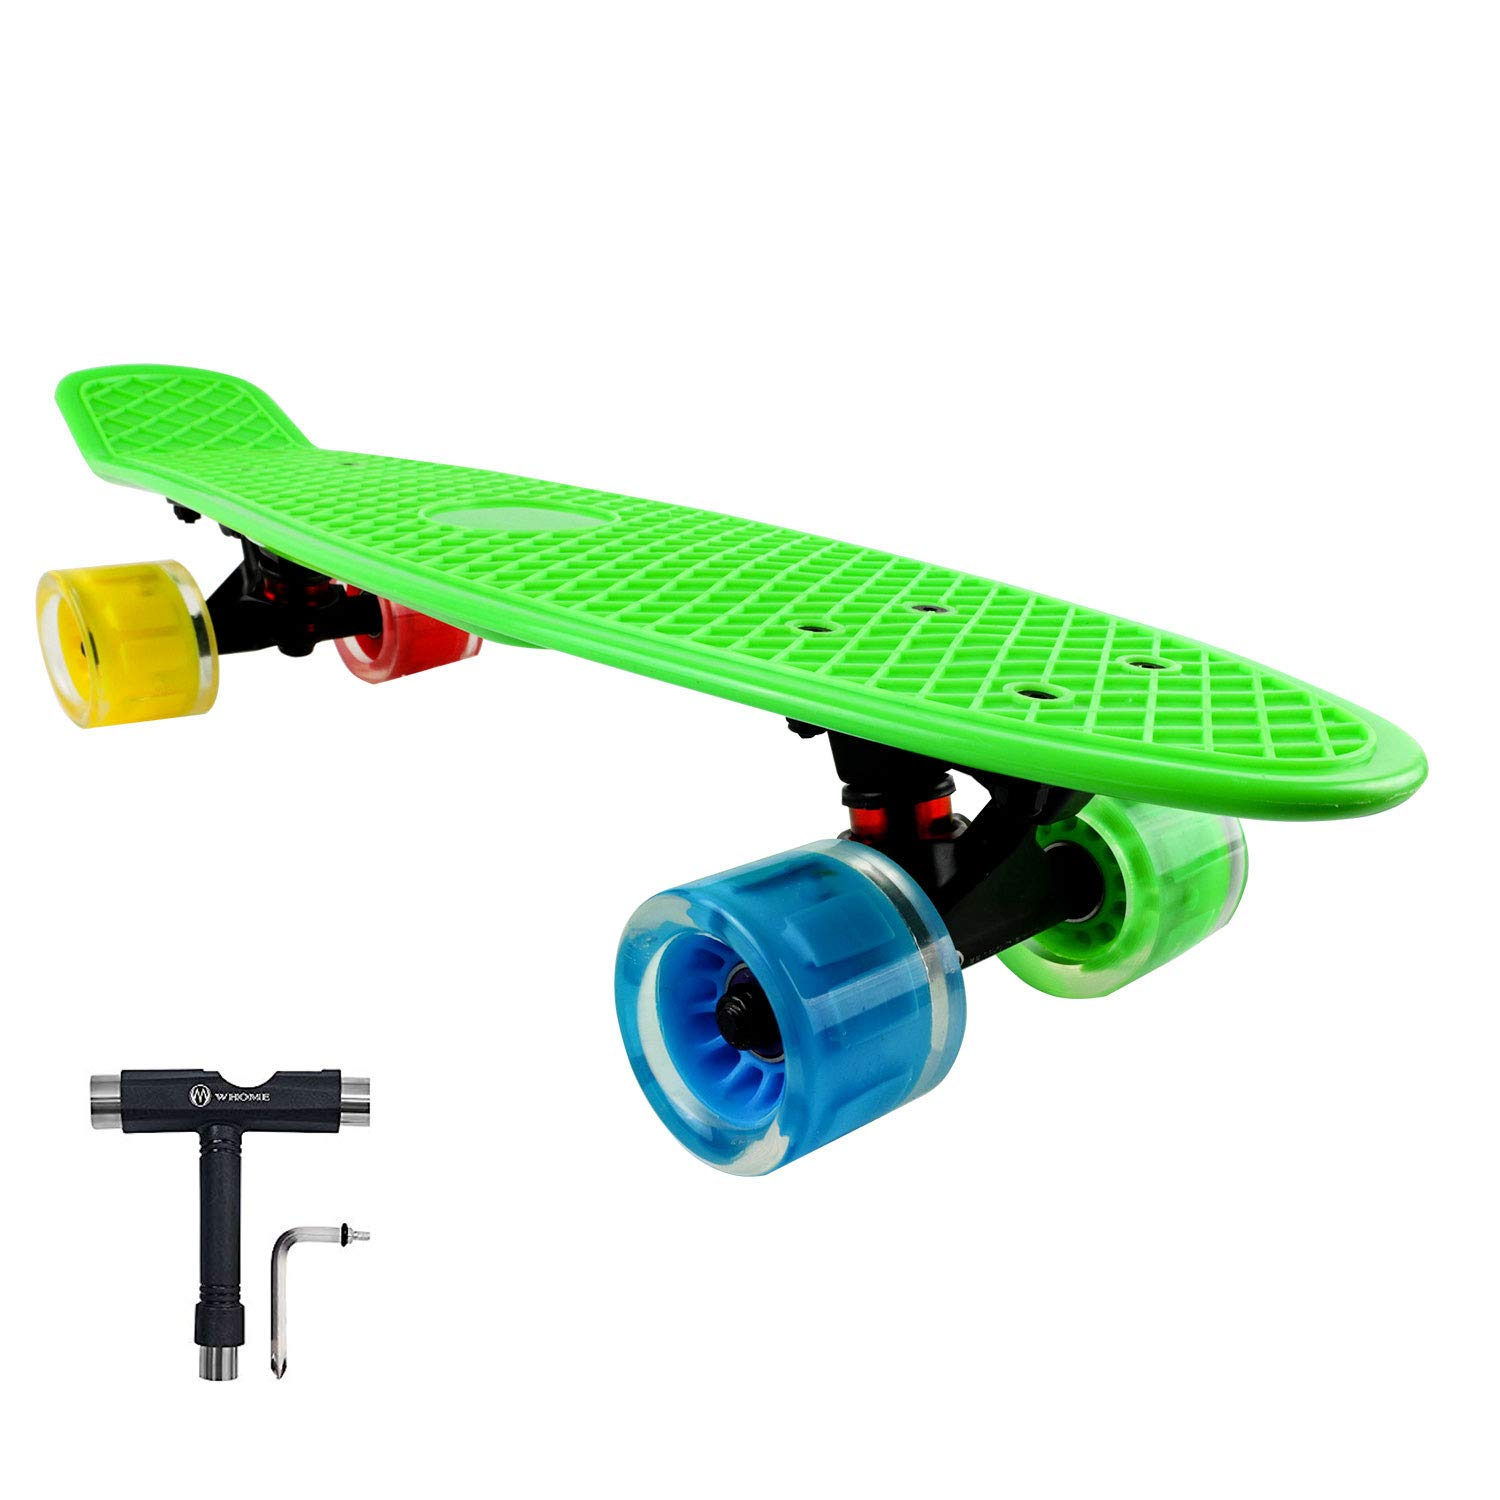 WHOME 4Th Generation LED Wheel Skateboard for Adult Youth Kid and Beginner - 22'' Cruise Skateboard Complete with 60x45mm LED Light Up Wheels for Girl and boy T-Tool Included